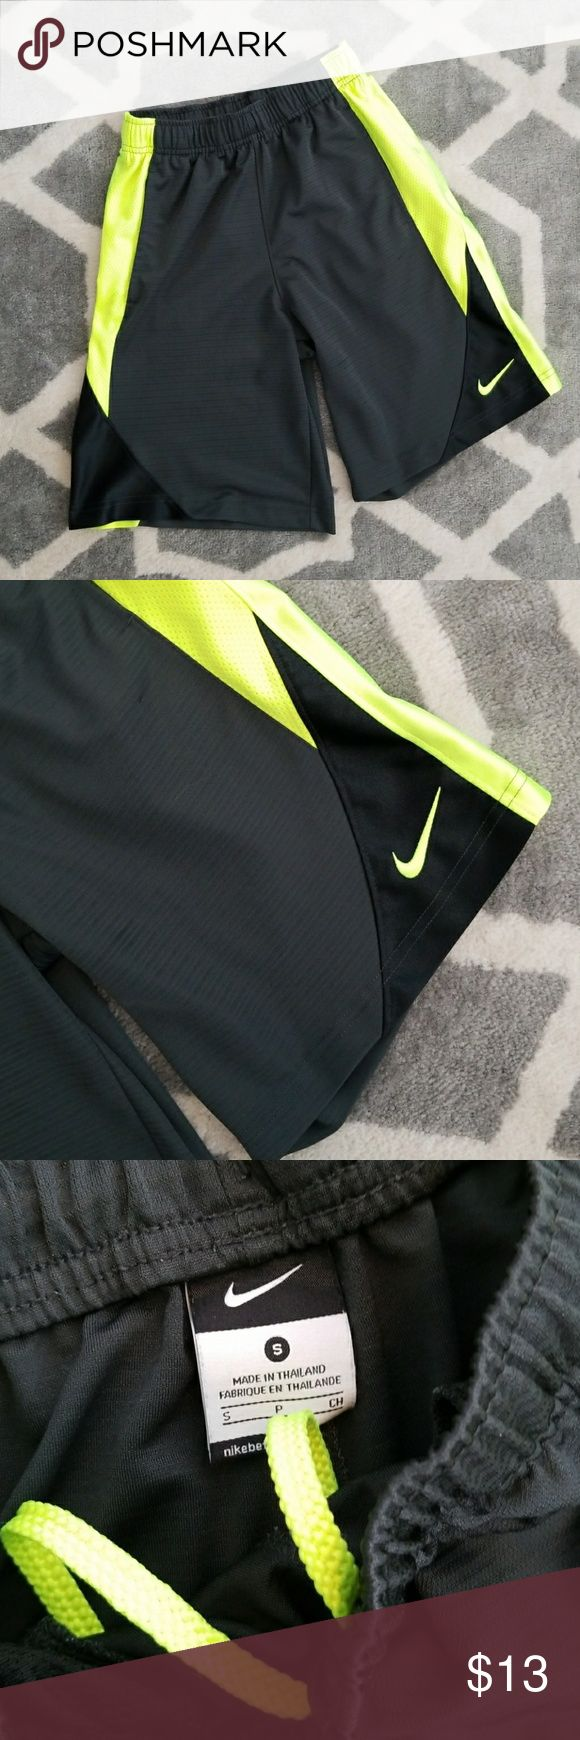 """Nike shorts Boys Nike shorts in excellent condition!! Size small with drawstring and pockets.  Dark gray with black and neon yellow accents!  9"""" inseam   Bundle for a discount!! Nike Bottoms Shorts"""